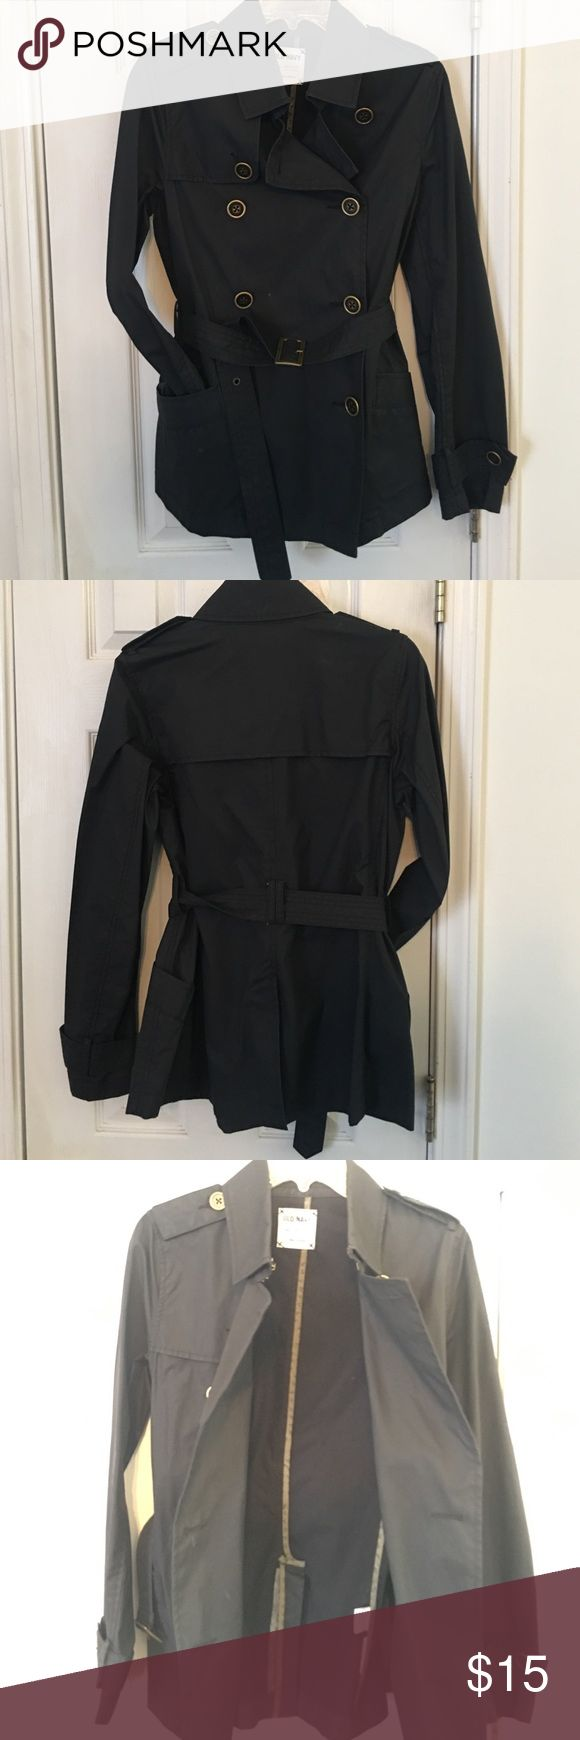 Women's Navy Blue trench Old Navy size M Super cute and chic Old Navy short trench size M. No holes, stains, rips, odors or tears.  Clean inside and out all buttons in tact. Work twice. Old Navy Jackets & Coats Trench Coats